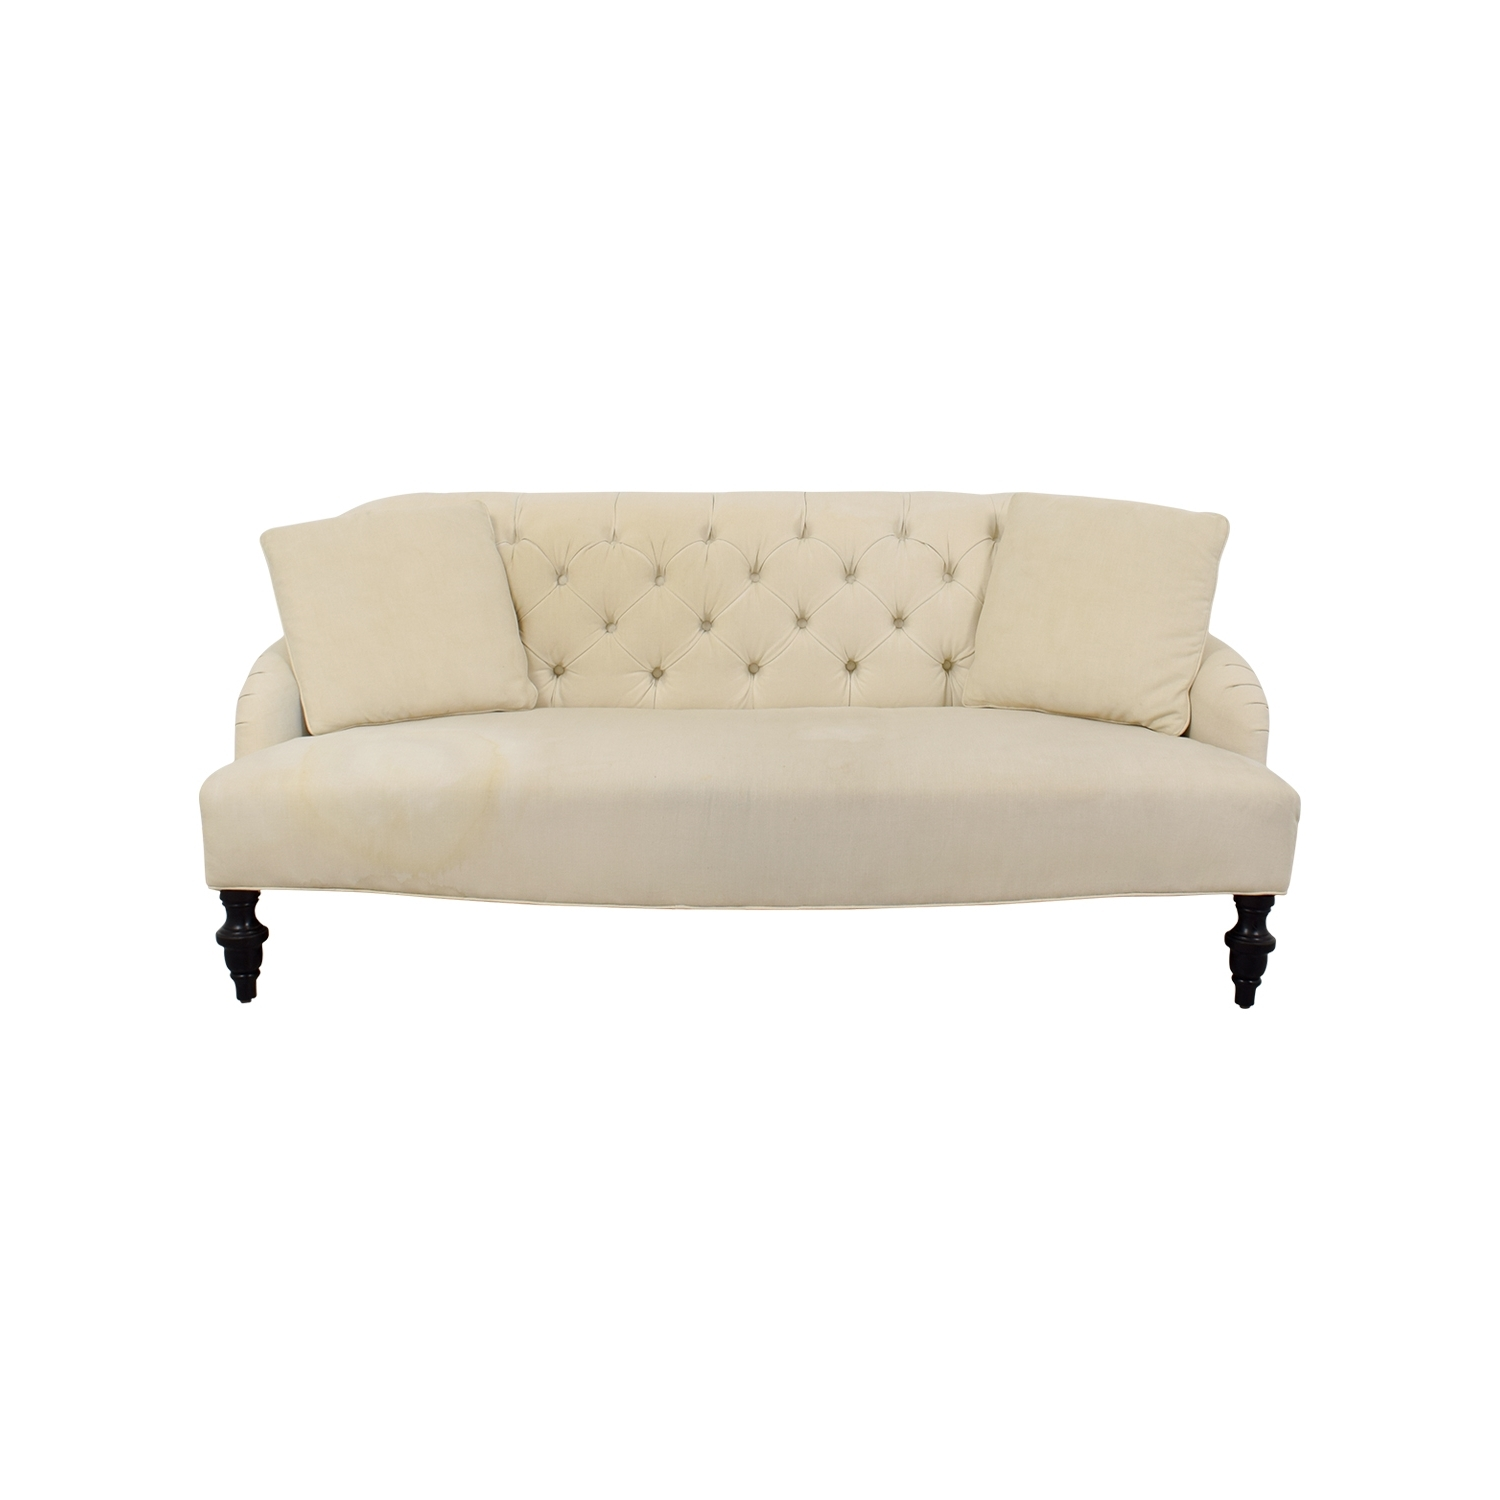 [%90% Off – Pottery Barn Pottery Barn Clara Upholstered Apartment For 2018 Apartment Sofas|Apartment Sofas Within Recent 90% Off – Pottery Barn Pottery Barn Clara Upholstered Apartment|Trendy Apartment Sofas Throughout 90% Off – Pottery Barn Pottery Barn Clara Upholstered Apartment|Current 90% Off – Pottery Barn Pottery Barn Clara Upholstered Apartment For Apartment Sofas%] (View 3 of 20)